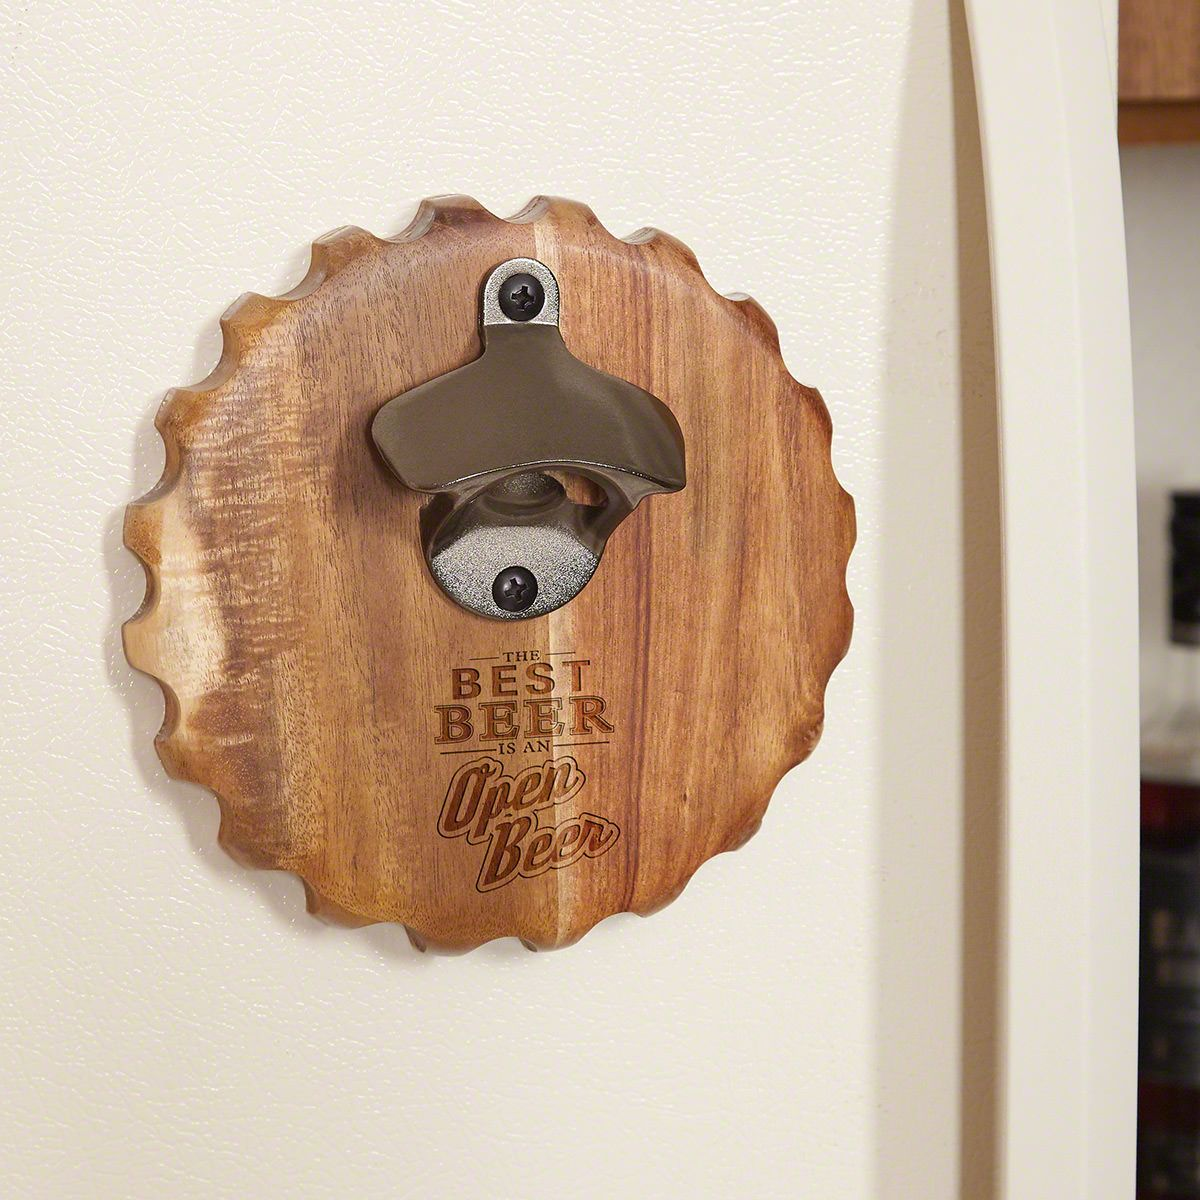 Best Beer is an Open Beer Funny Magnetic Bottle Opener